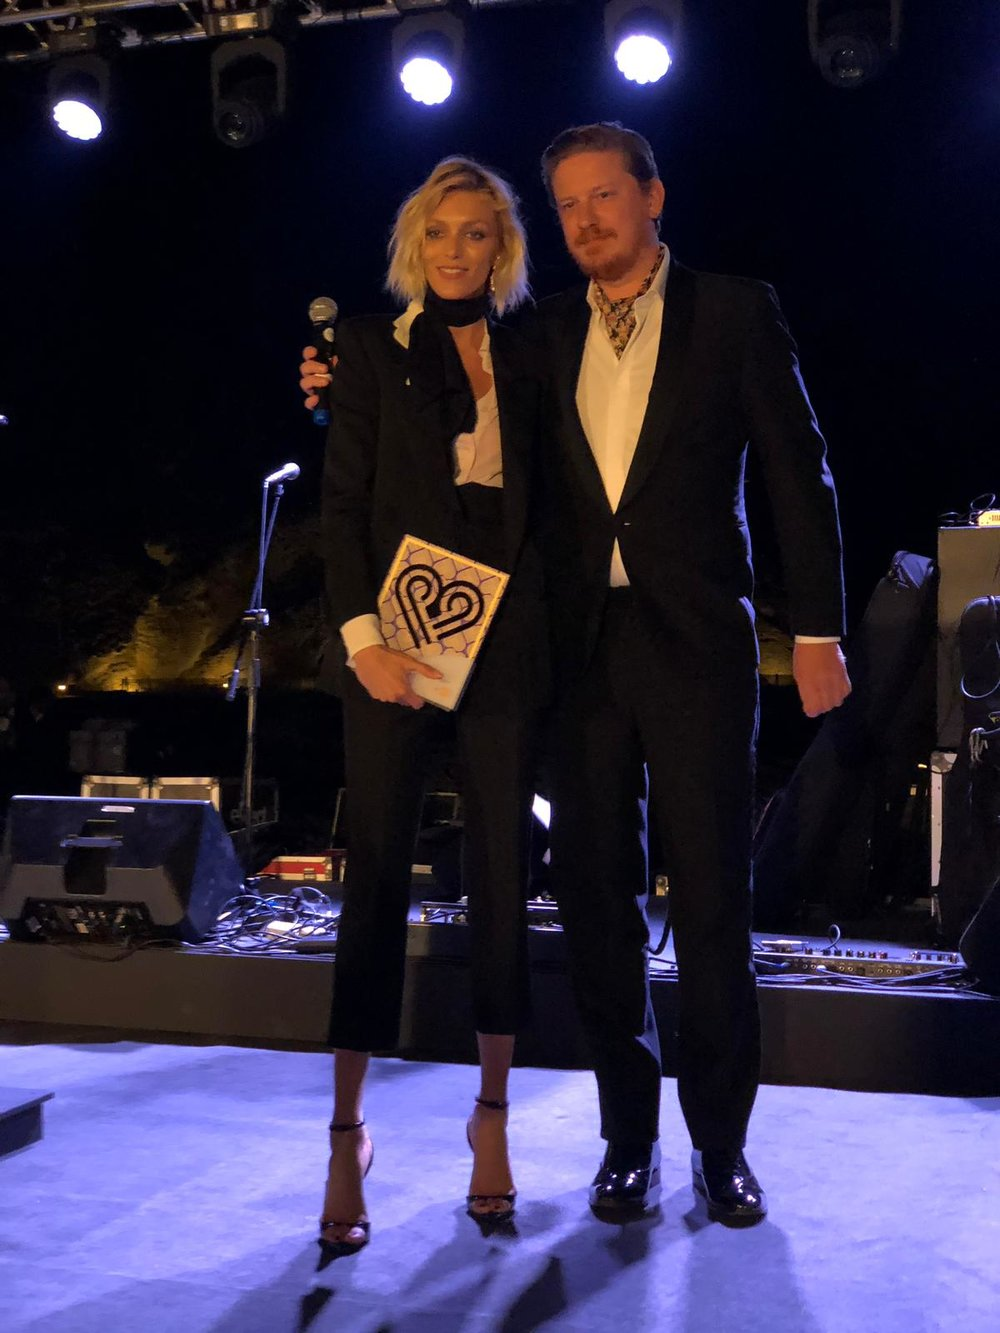 Filip Niedenthal Editor in Chief Vogue Poland presents award to Anja Rubik.jpeg